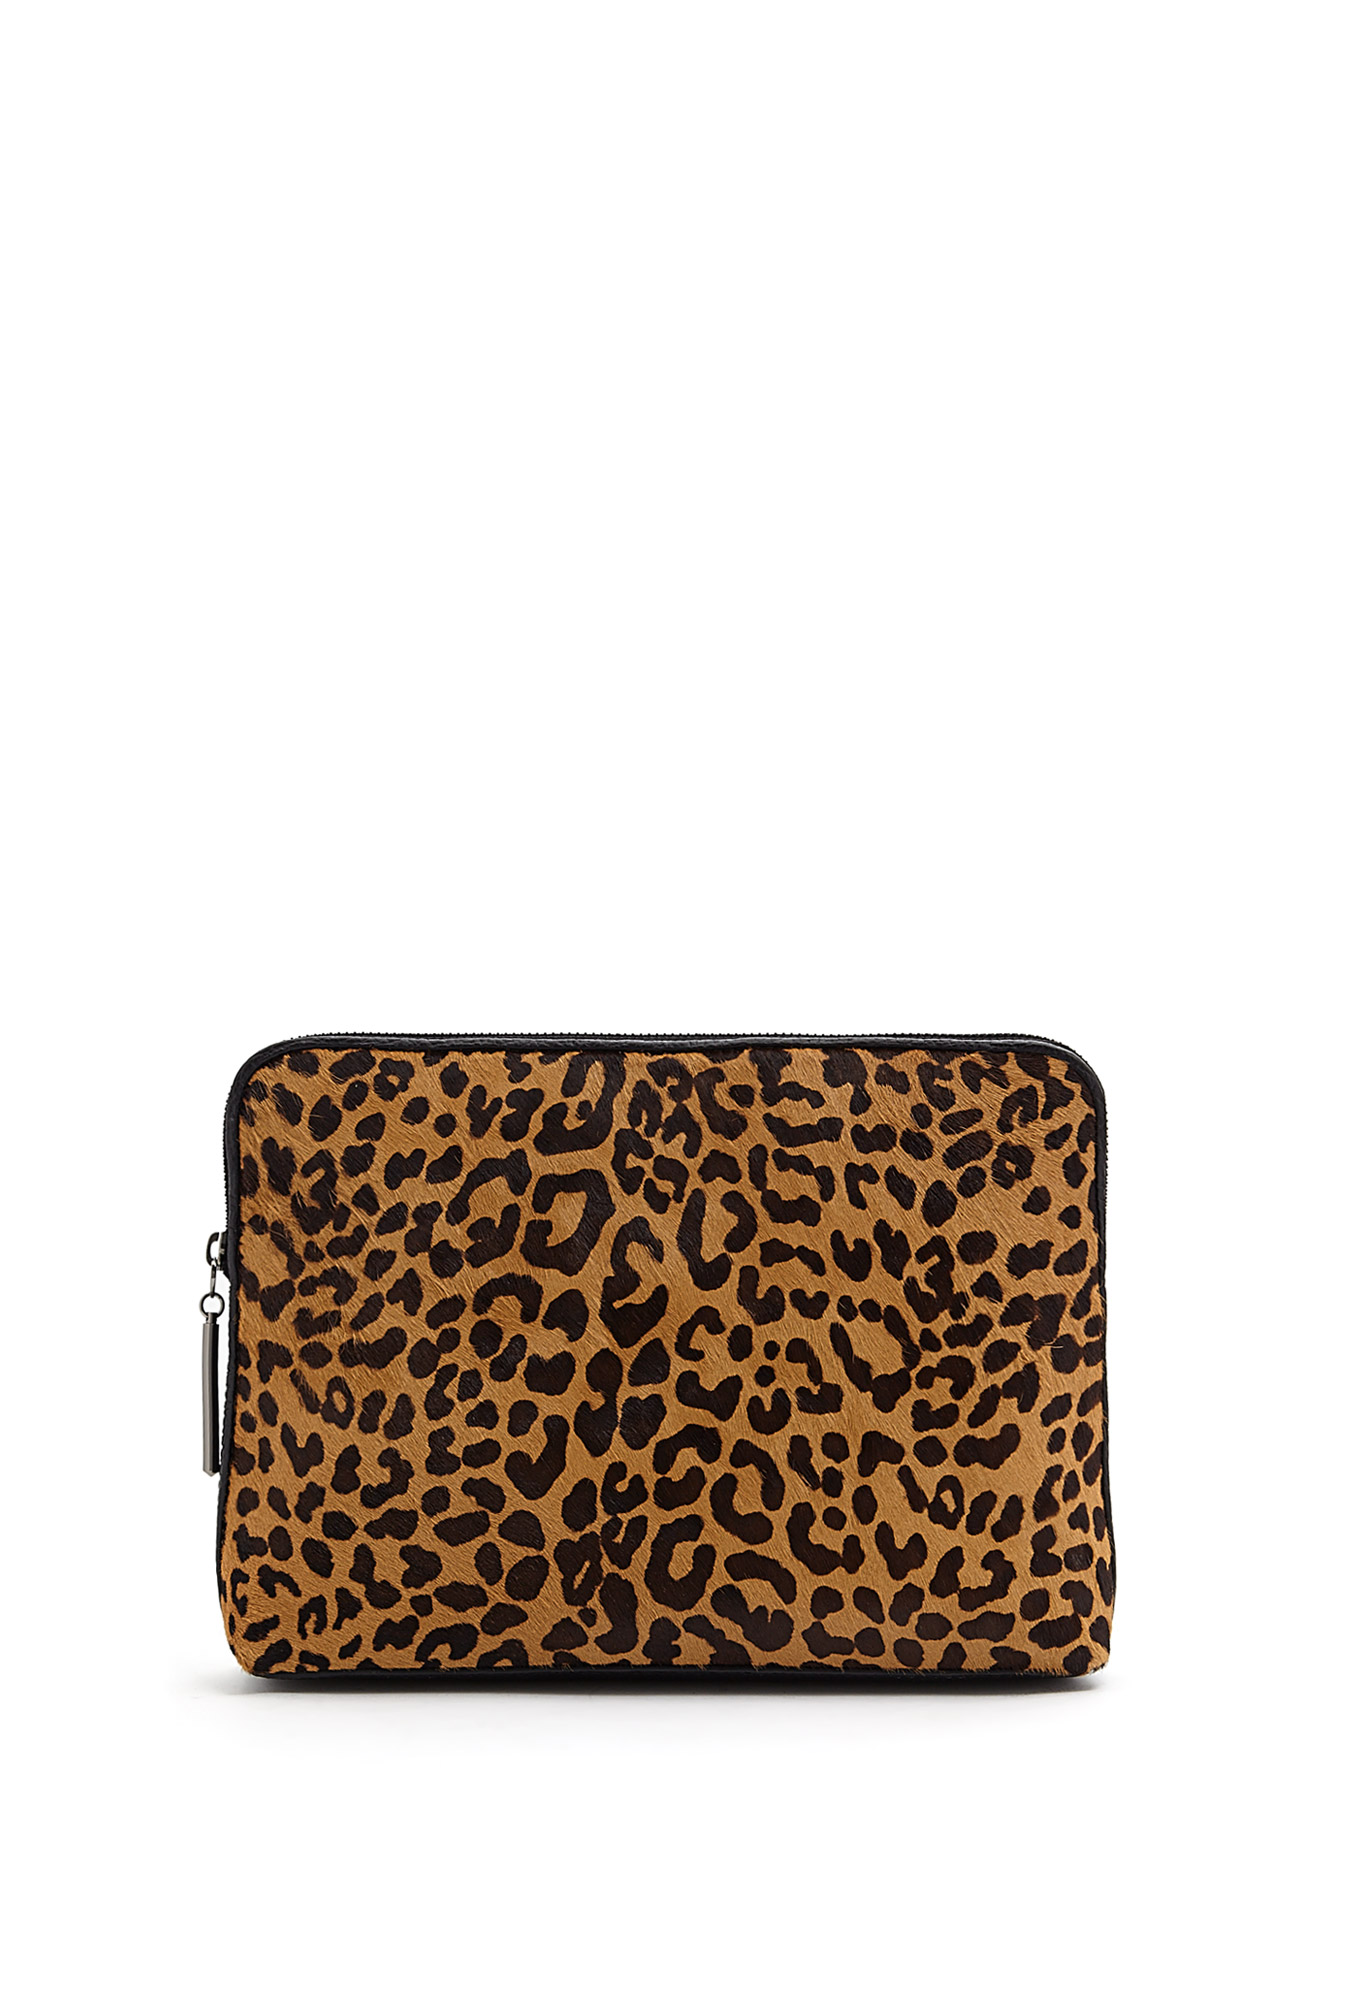 3.1 Phillip Lim  | Natural Leopard Print Haircalf 31 Minute Cosmetic Zip Clutch